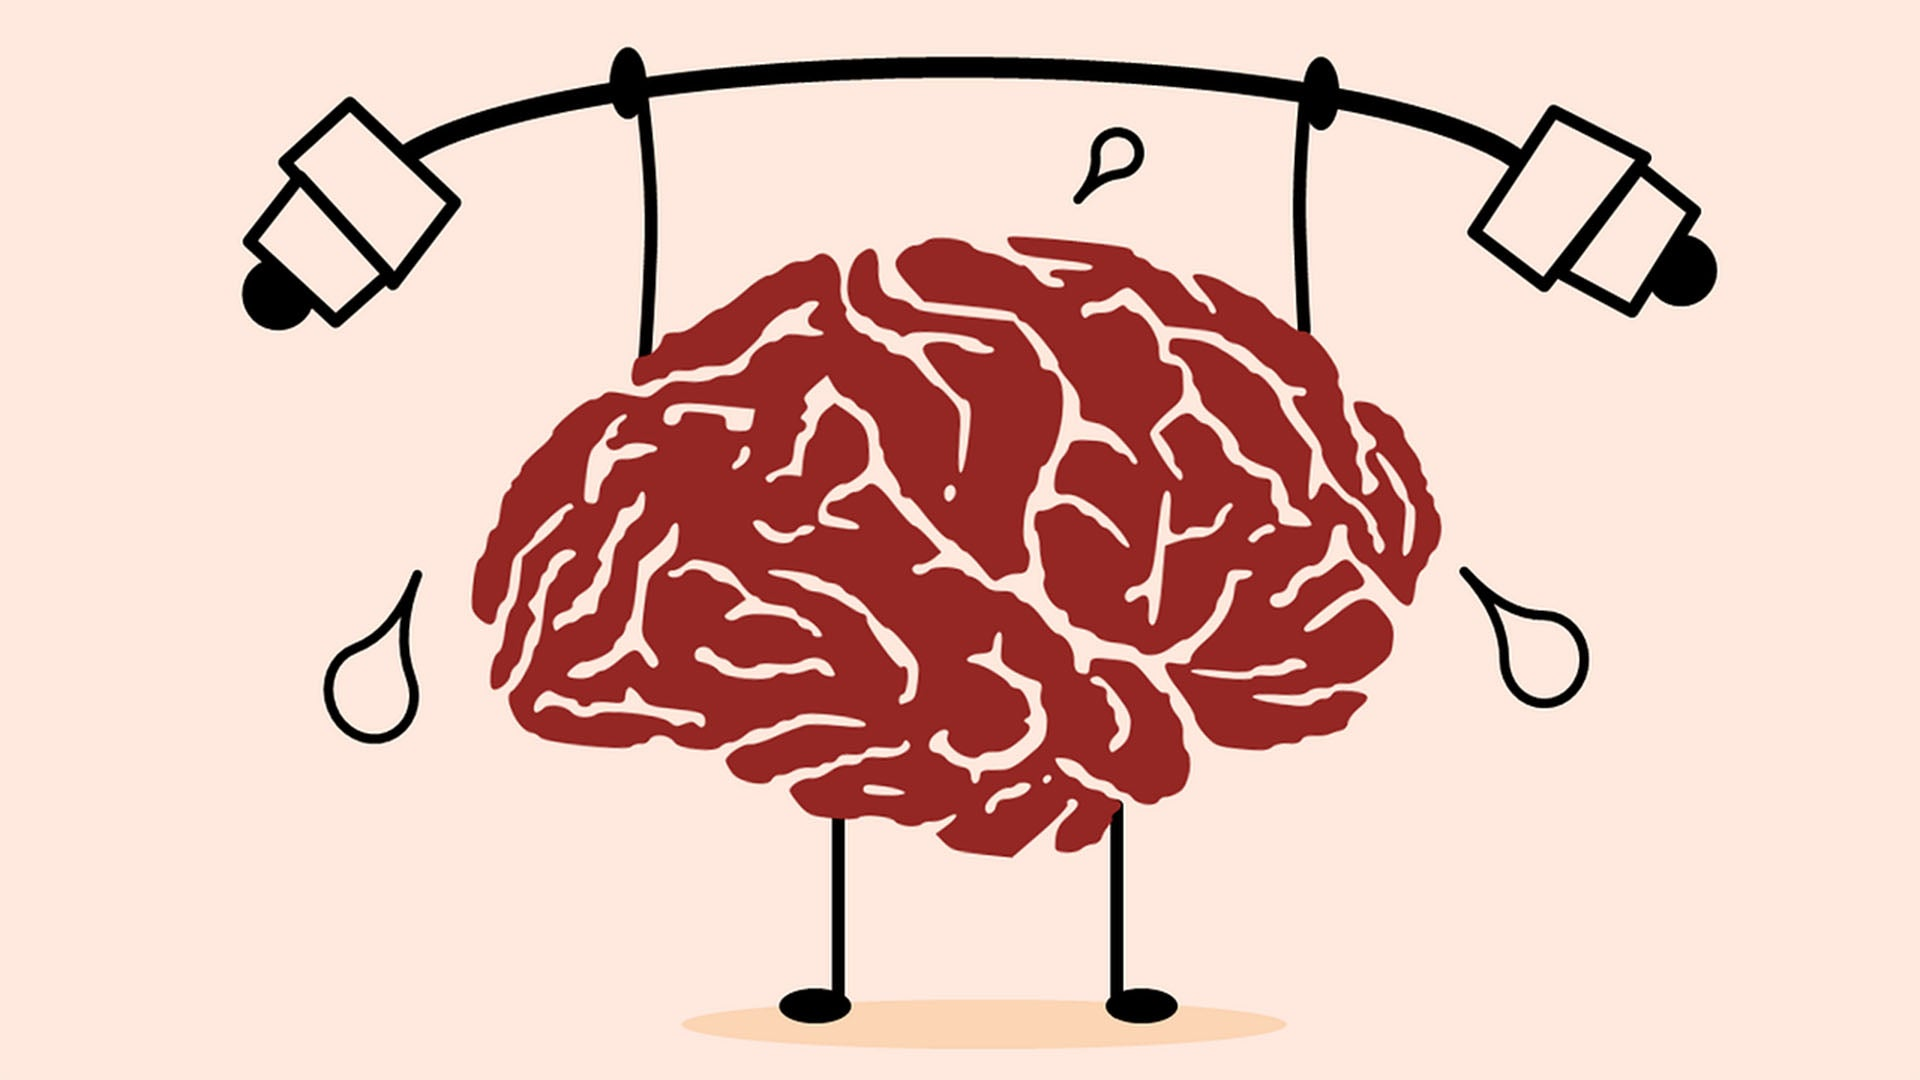 illustration of brain lifting weights mental health